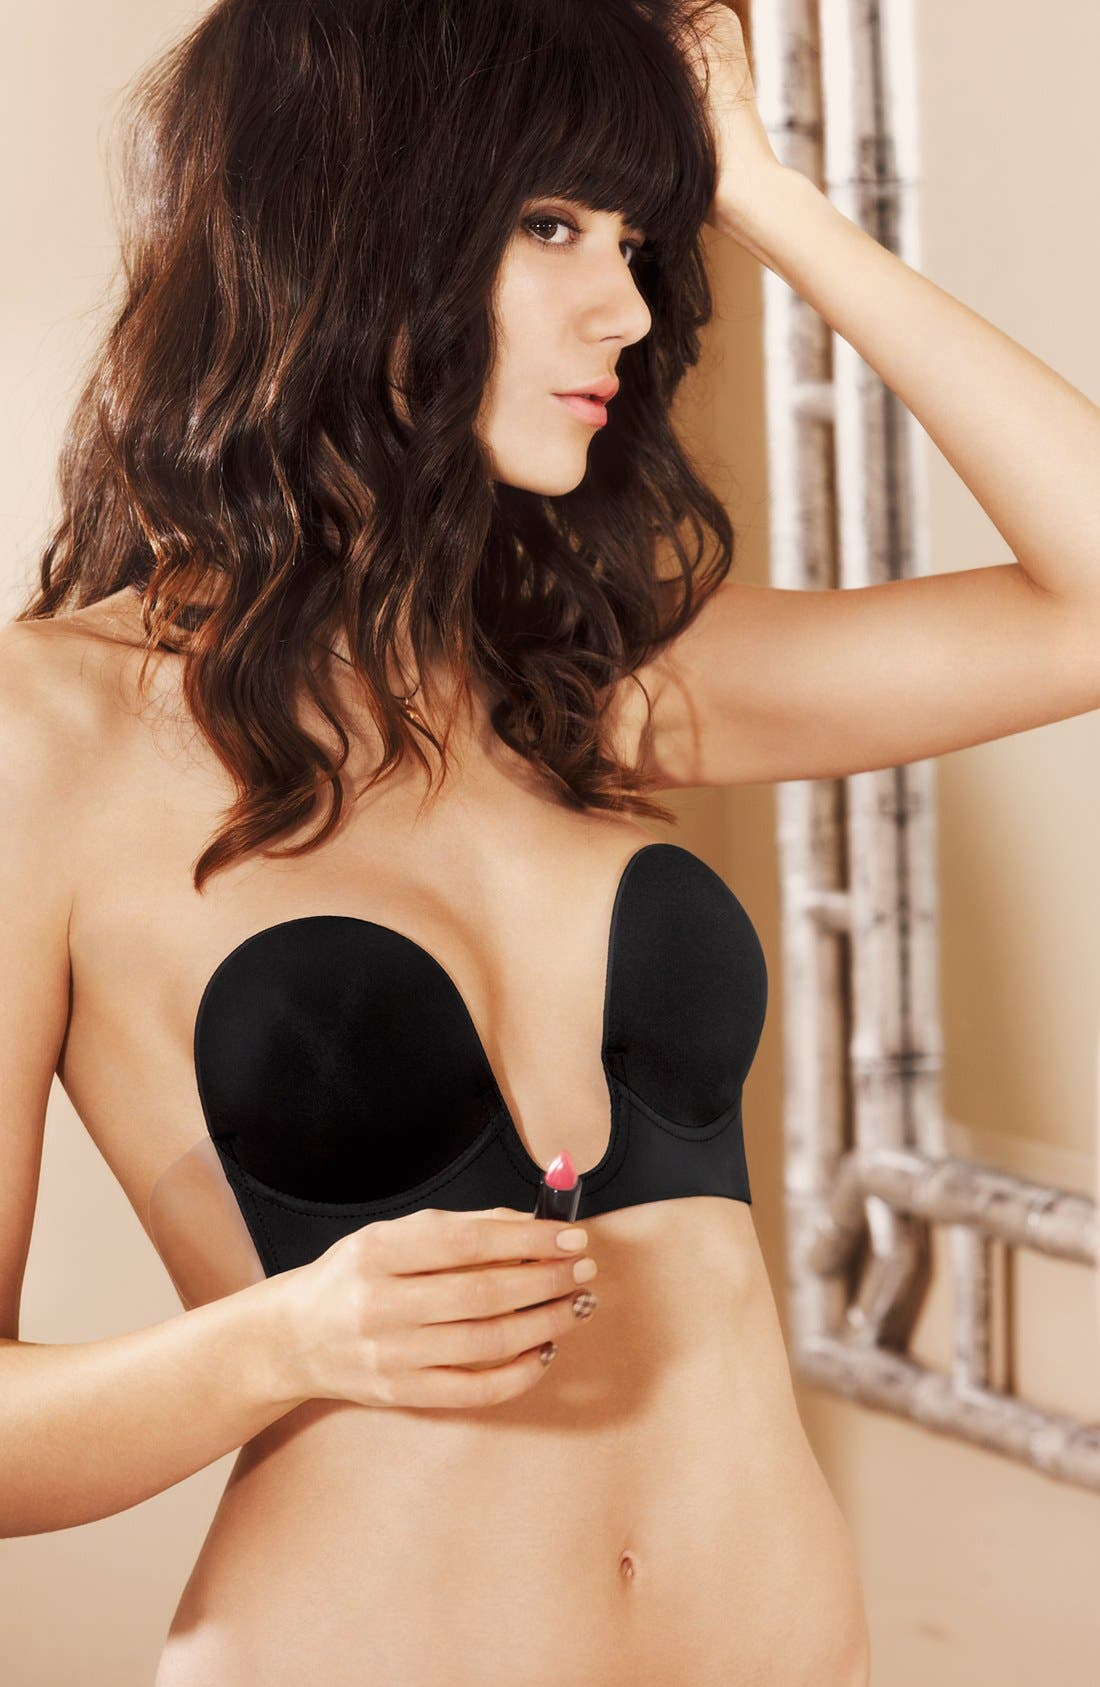 'Uplunge' Backless Strapless Underwire Bra,                             Alternate thumbnail 10, color,                             BLACK